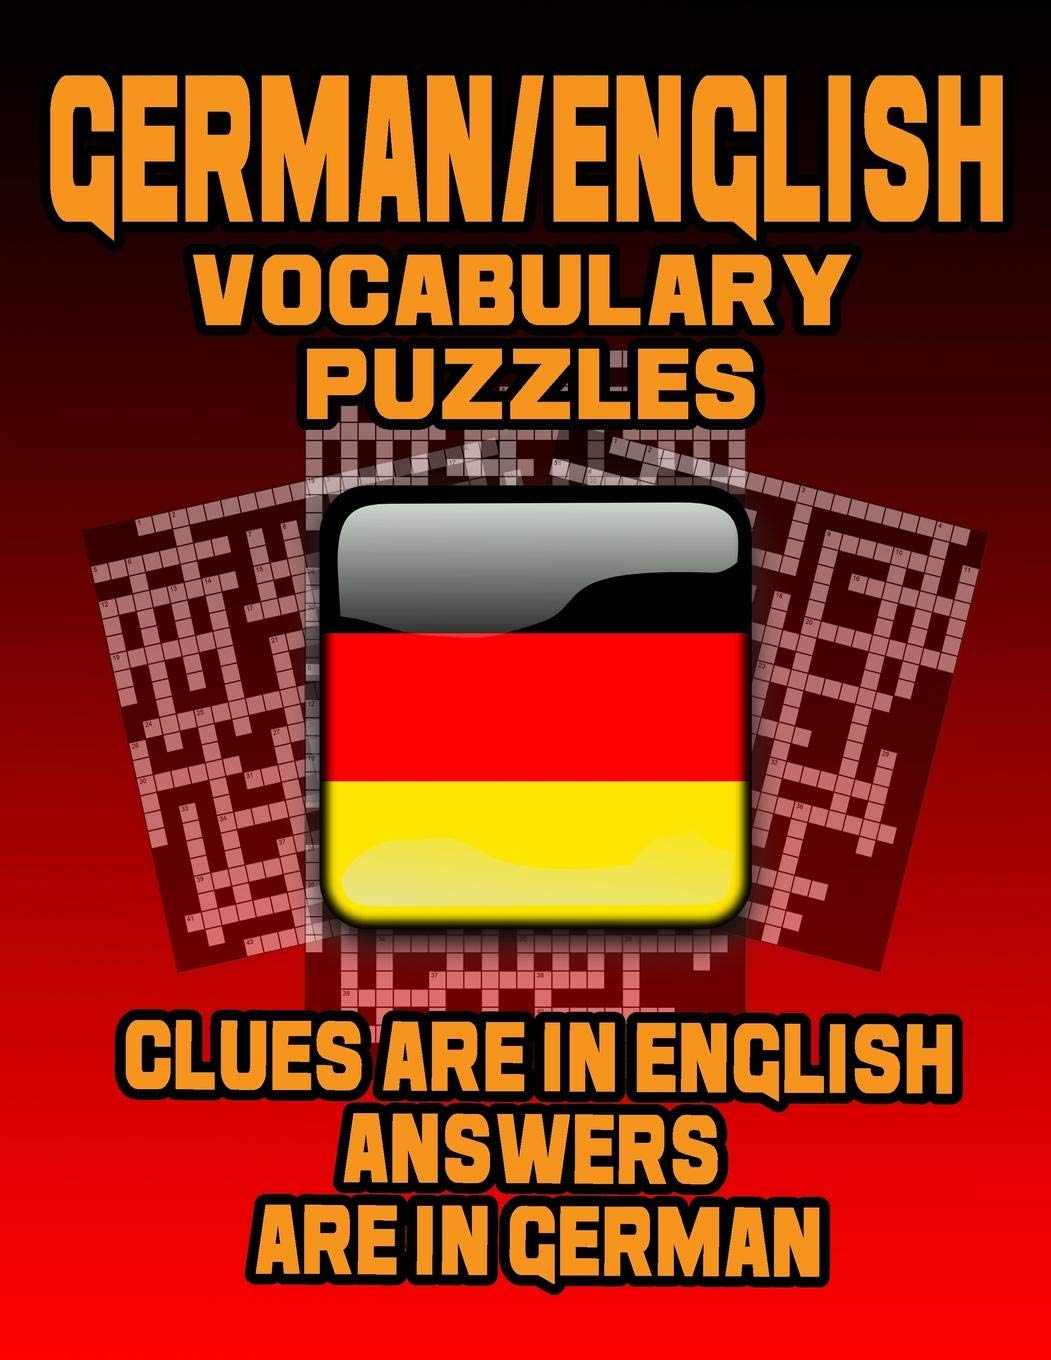 German English Vocabulary Puzzles  Learn German By Doing FUN Puzzles  LARGE PRINT 20 Crosswords With Clues In English Answers In German And 60 Word ... Puzzles  On Target Puzzles Band 14